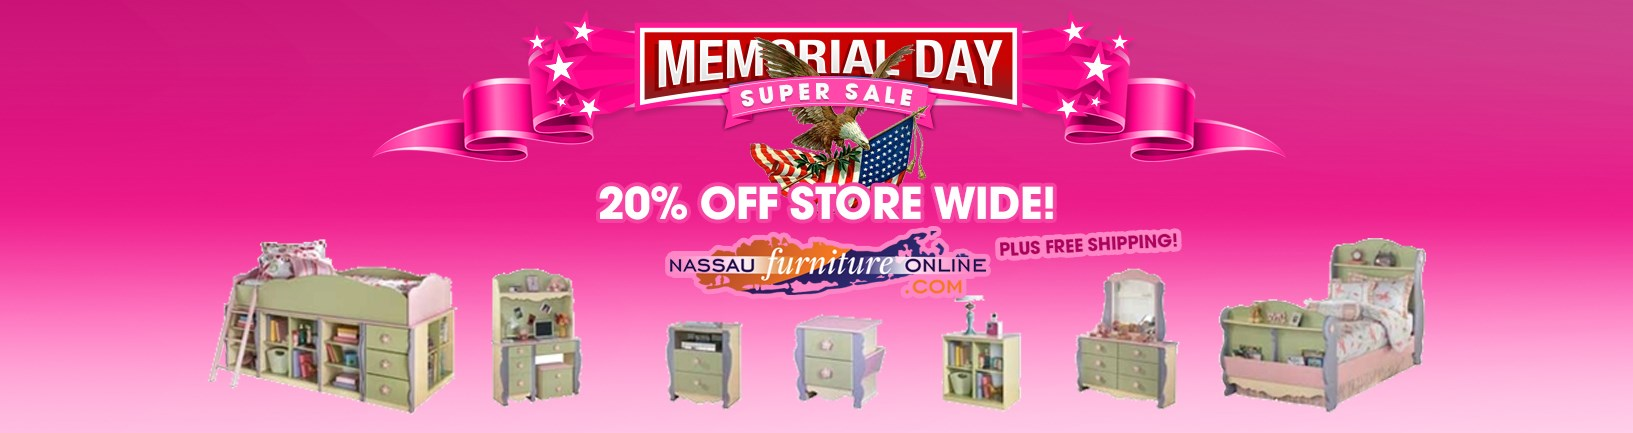 Memorial Day Super Sale at Nassau Furniture! 20% off store wide plus free shipping!